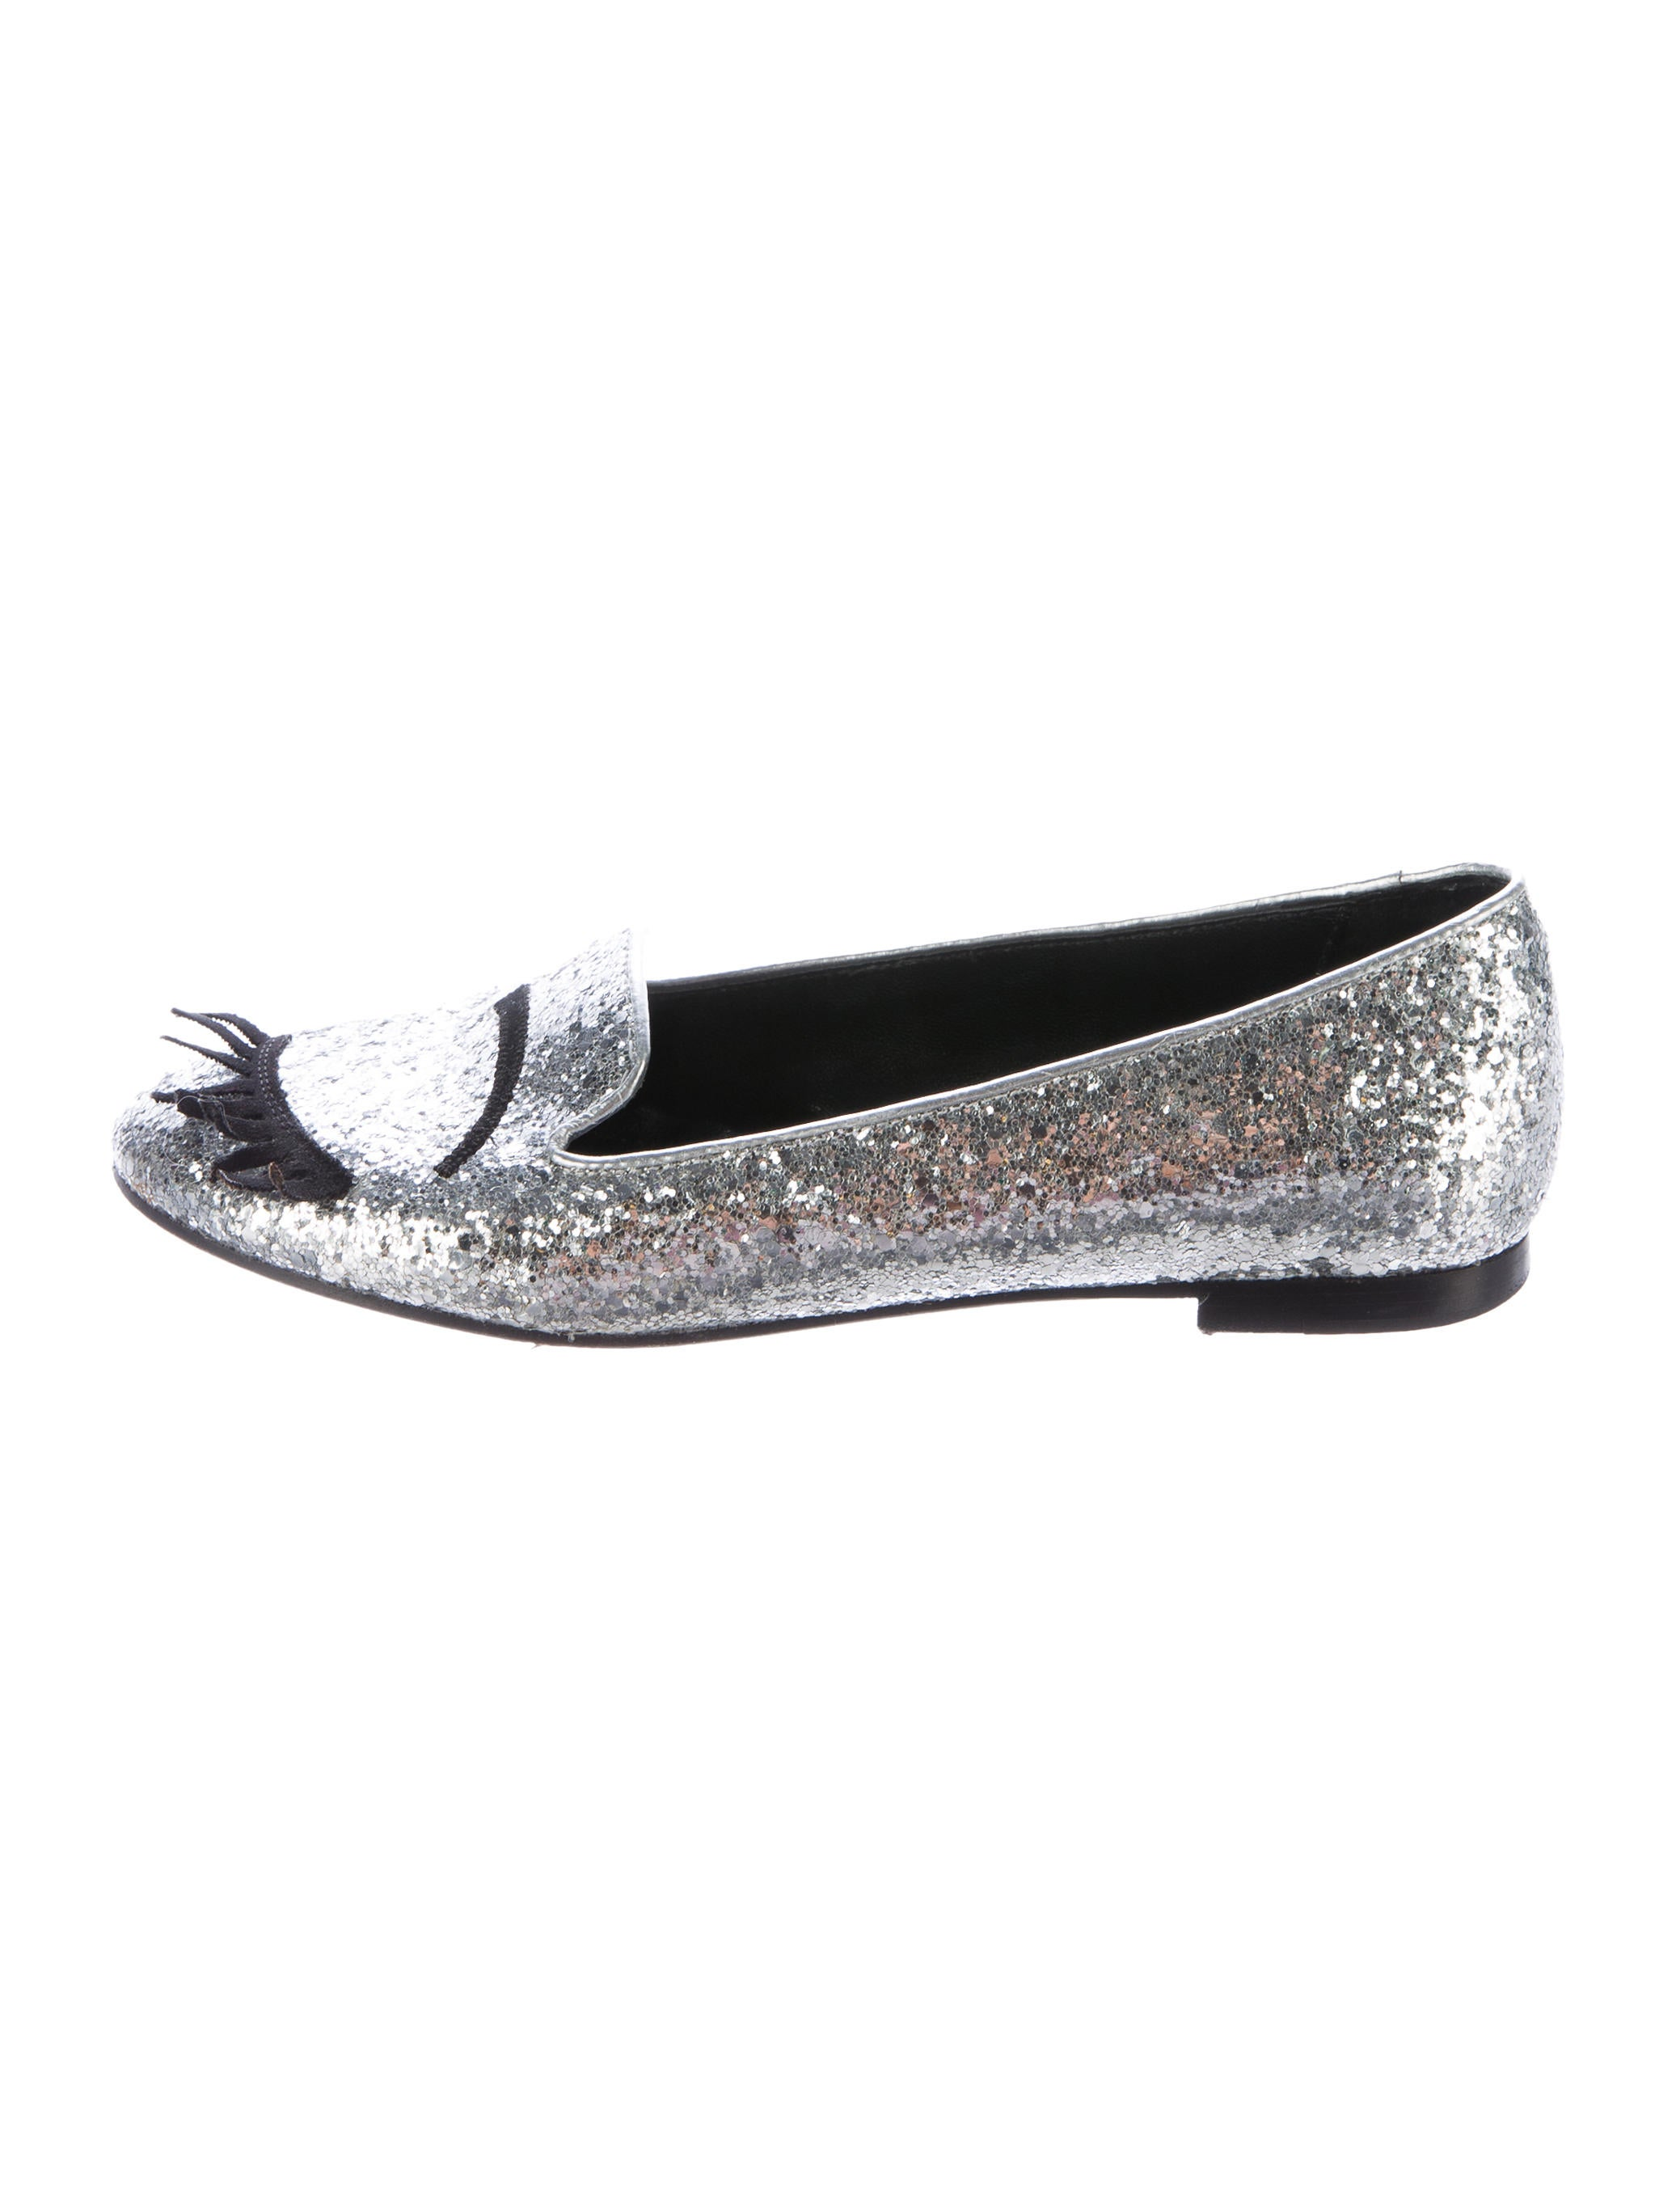 chiara ferragni glitter embellished loafers shoes wyx20088 the realreal. Black Bedroom Furniture Sets. Home Design Ideas